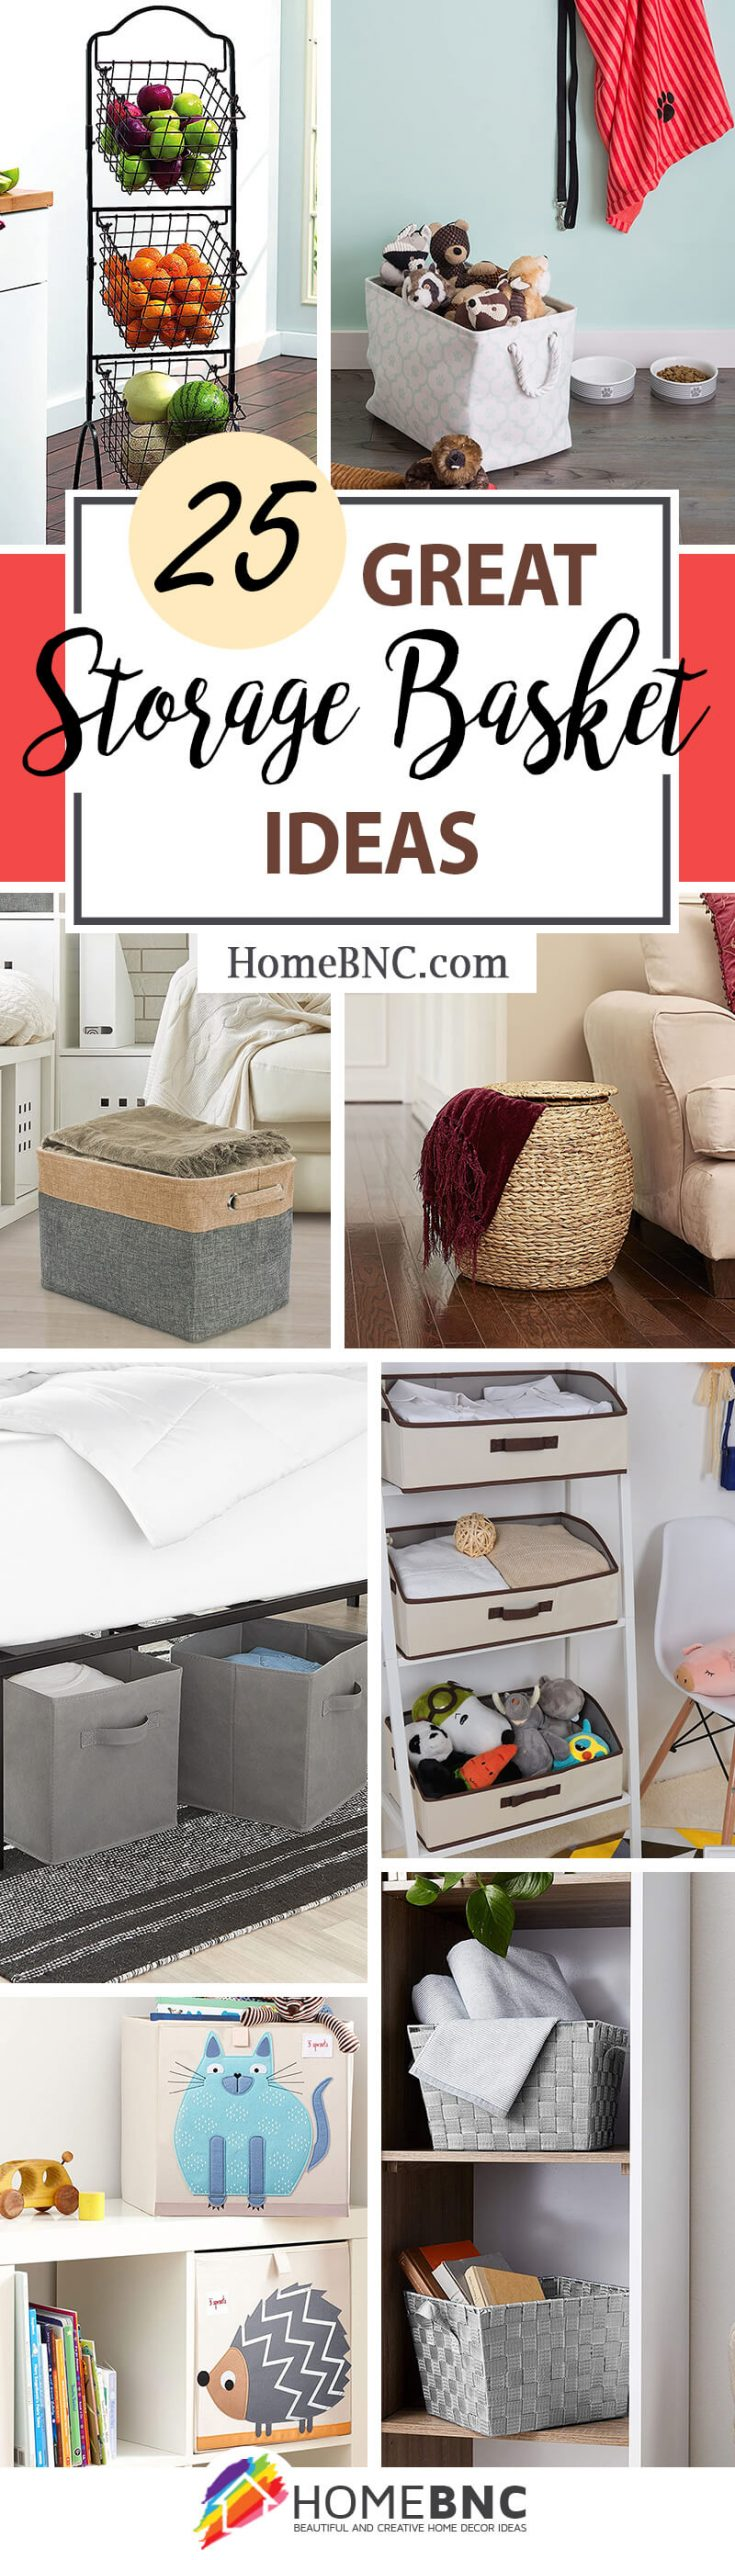 Best Storage Basket Ideas